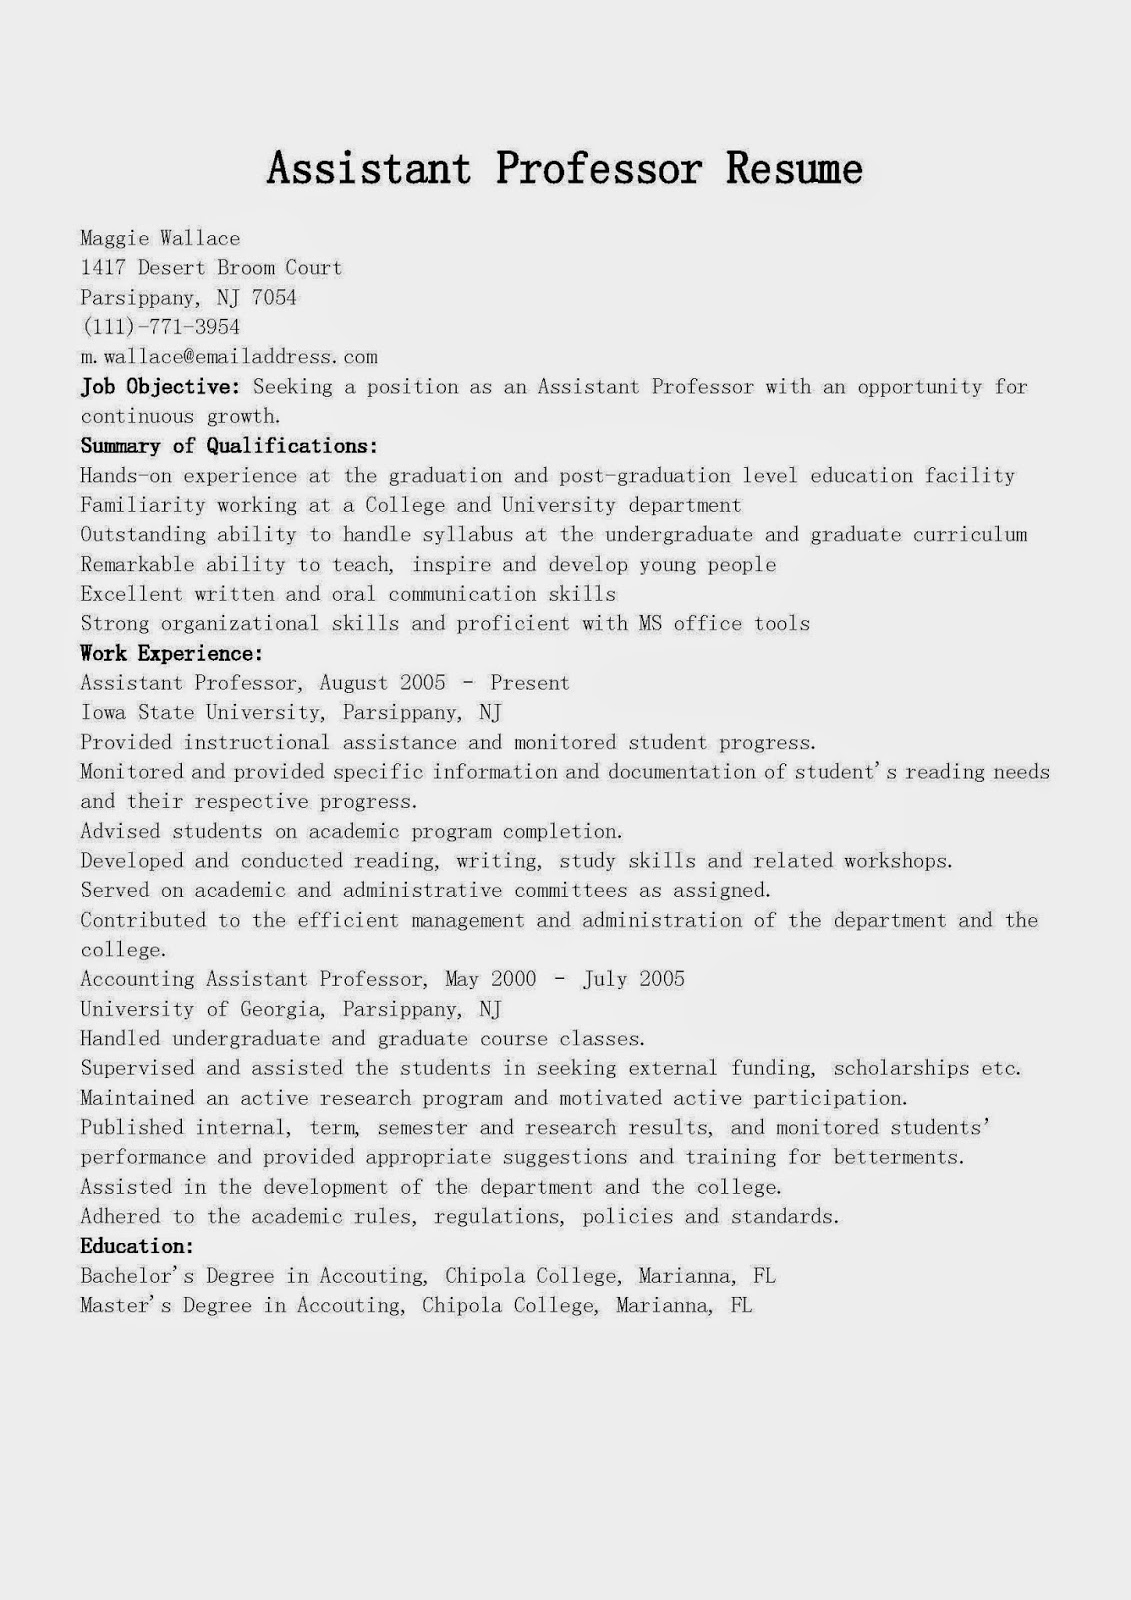 resume samples assistant professor resume sample. Black Bedroom Furniture Sets. Home Design Ideas